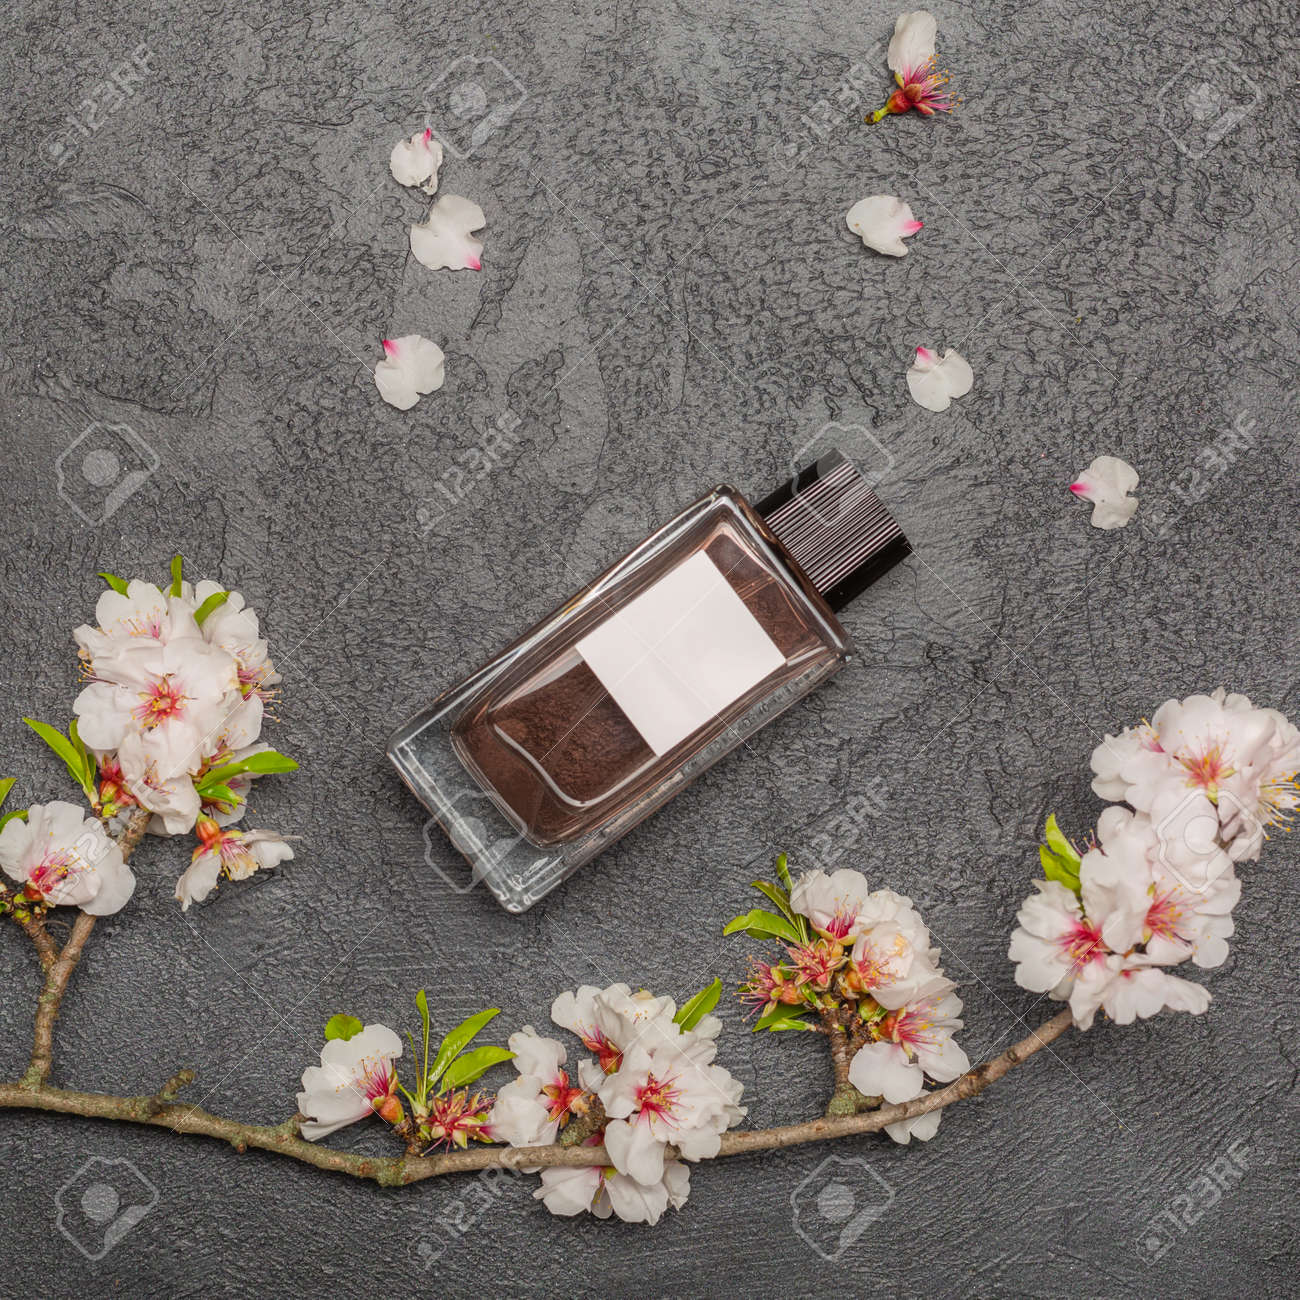 Flat lay banner with branch of cherry blossom flowers - 167193718